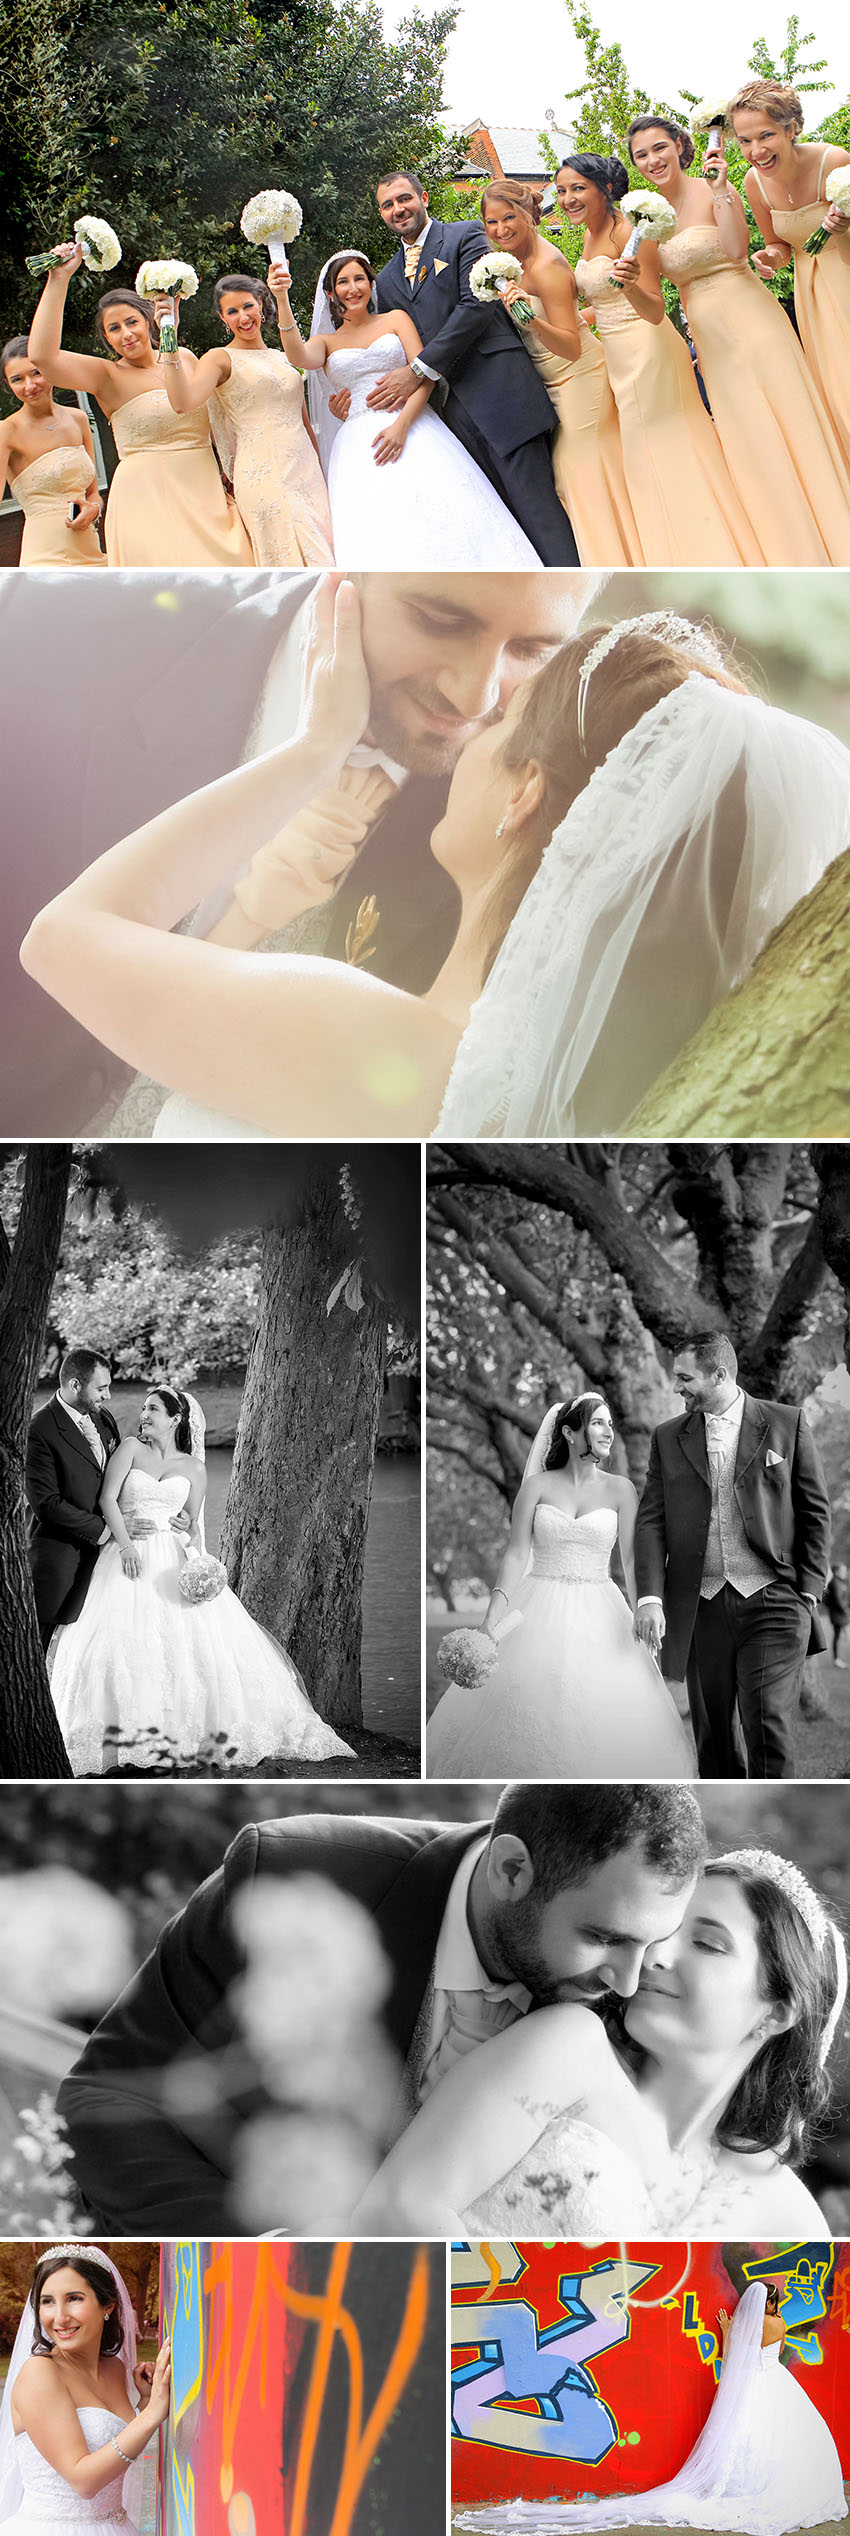 Wedding of Georgina and Evros in London 04